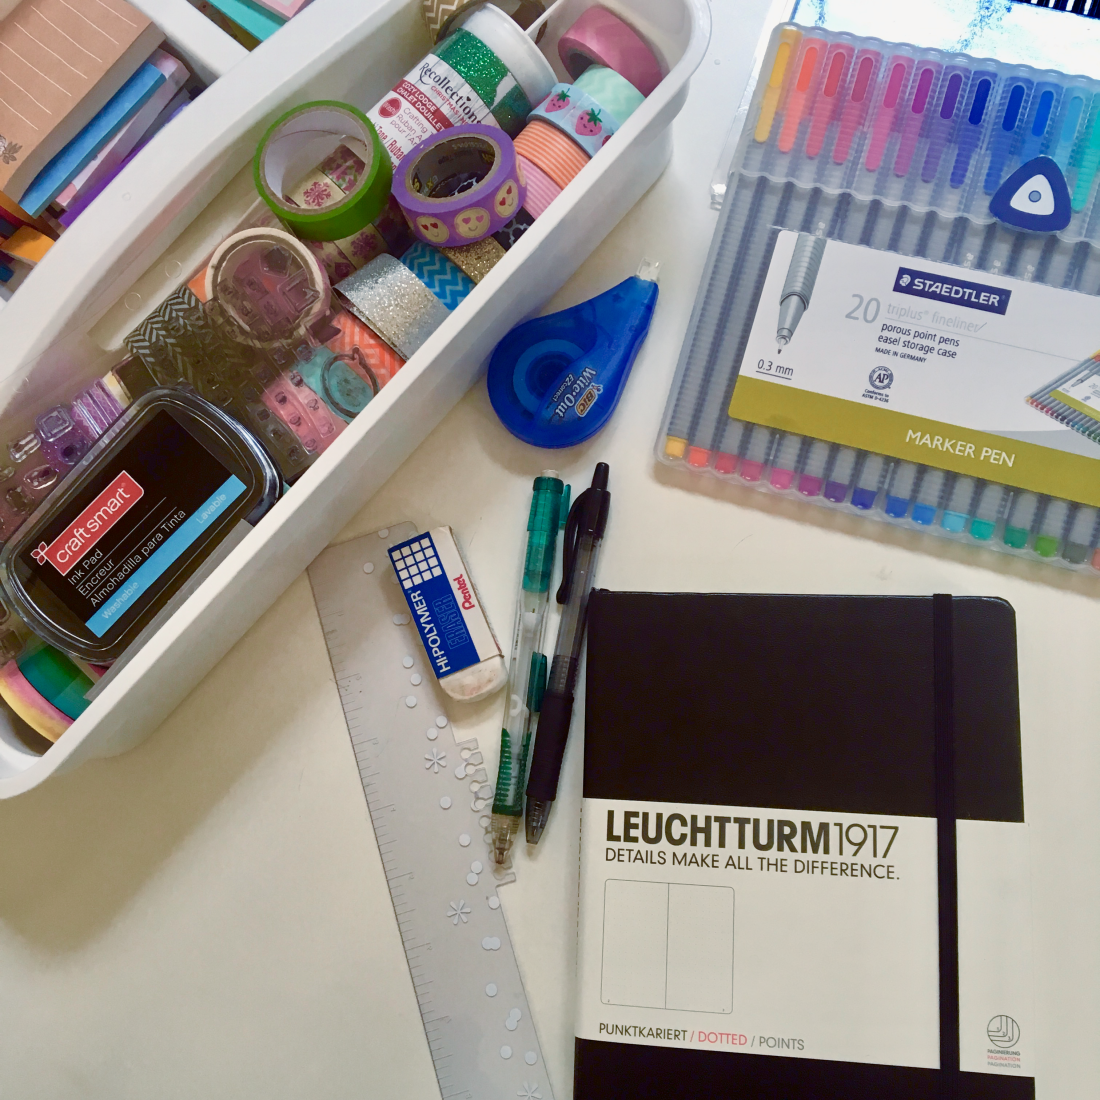 5 Healthy Ways to Manage Stress // Keep a Journal (or a Blog)